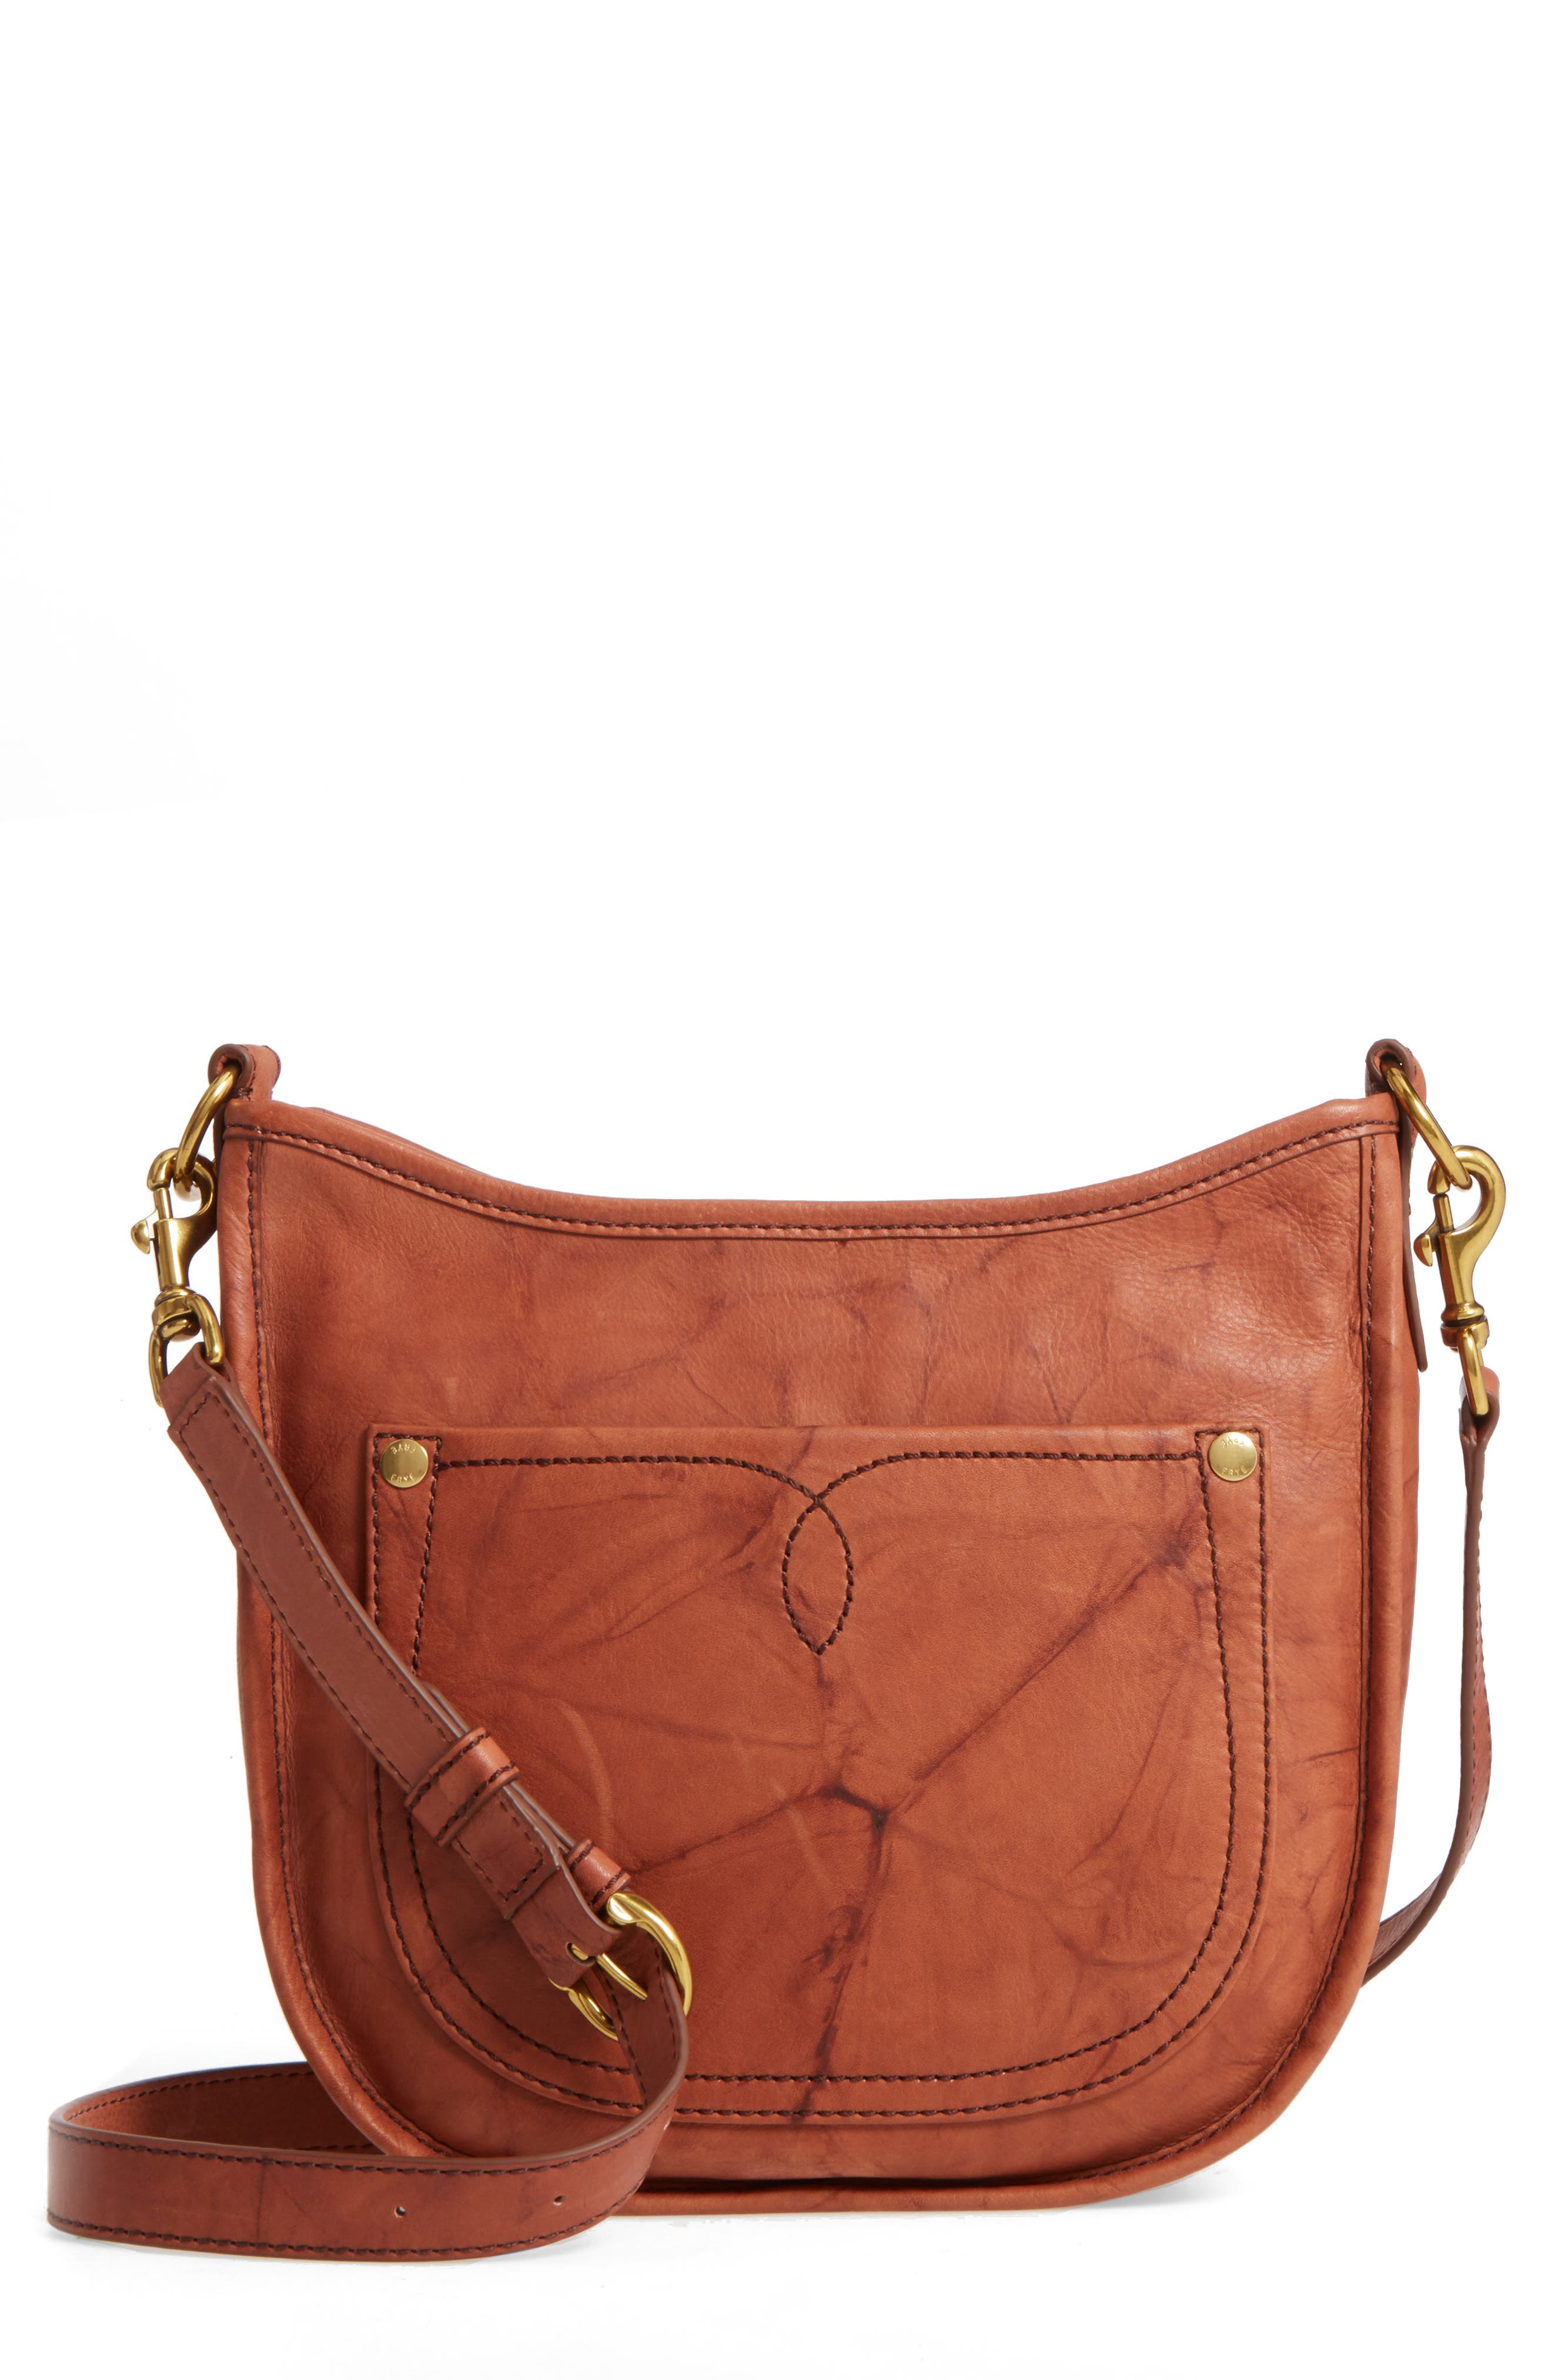 Campus Rivet Leather Crossbody Bag,                             Main thumbnail 1, color,                             Saddle